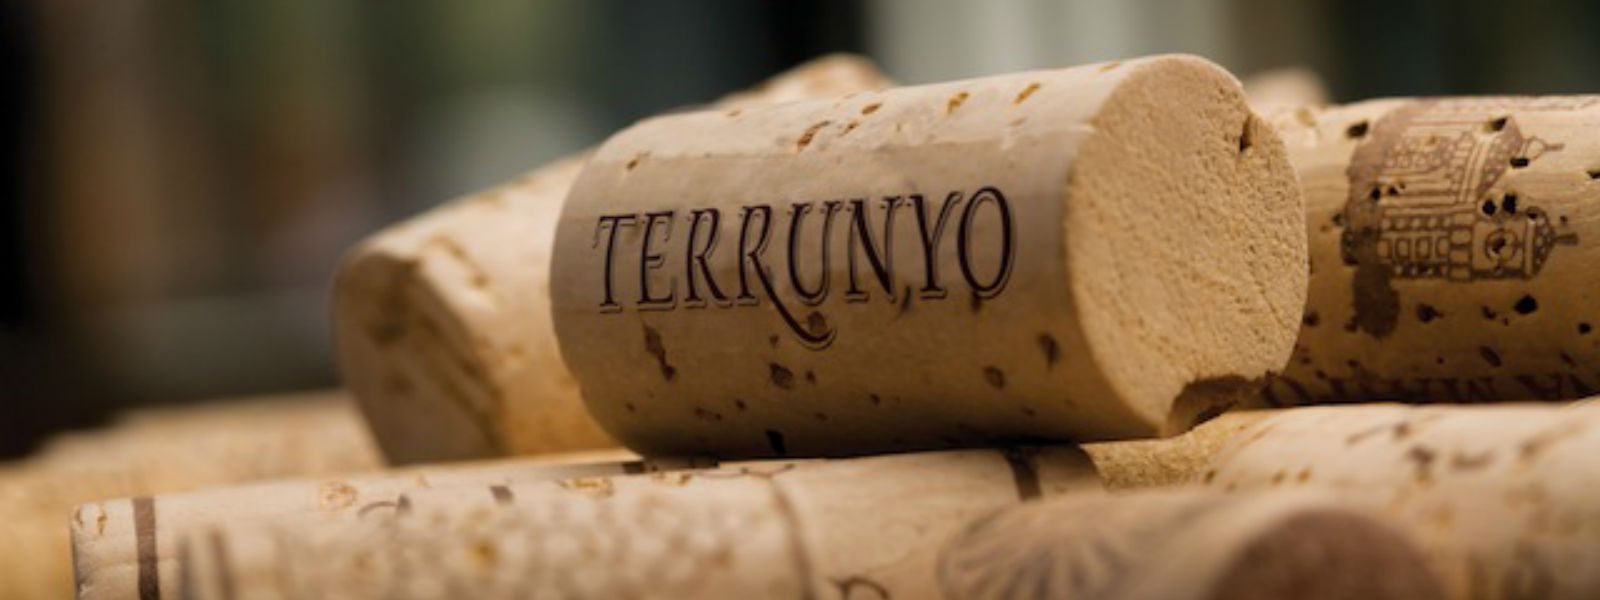 Terrunyo once again awarded outstanding scores